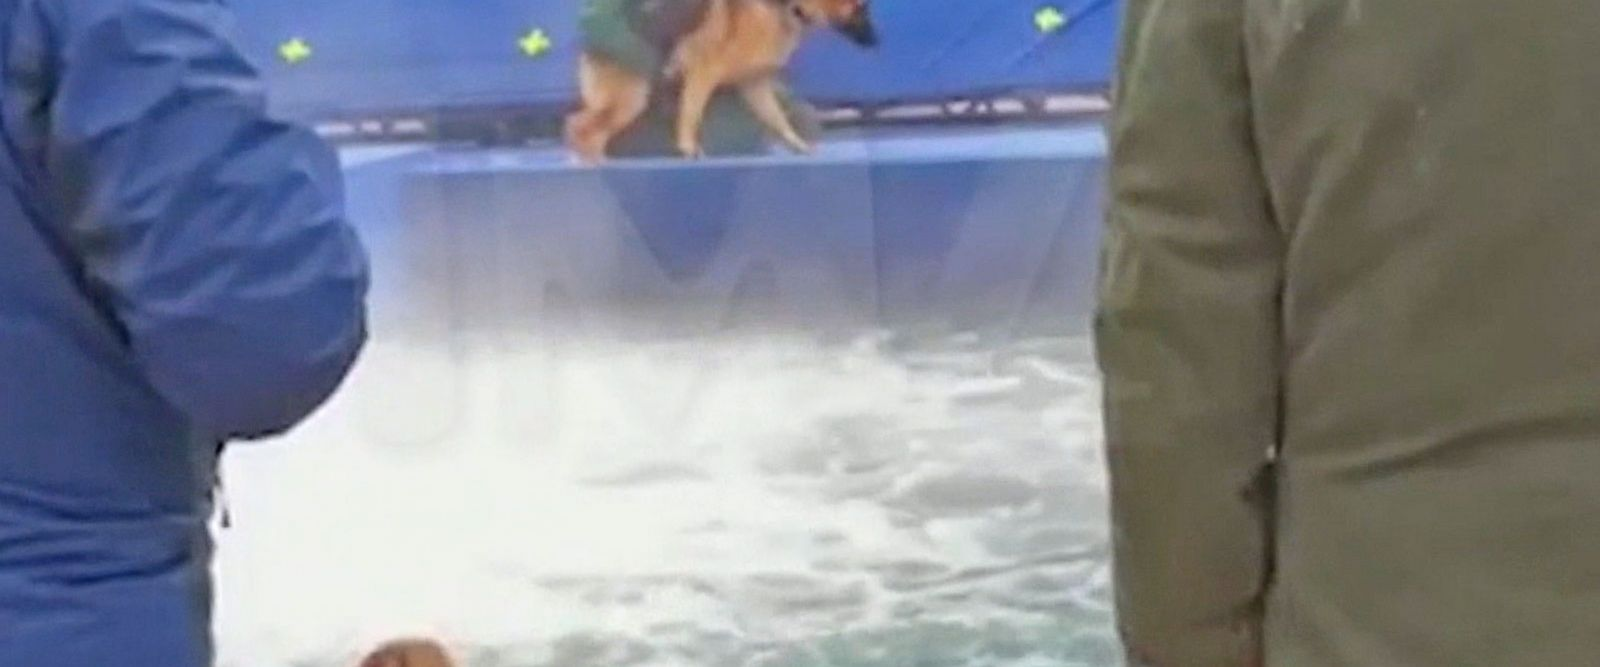 VIDEO: Leaked Footage From 'A Dog's Purpose' Film Set Leads to Canceled Premiere